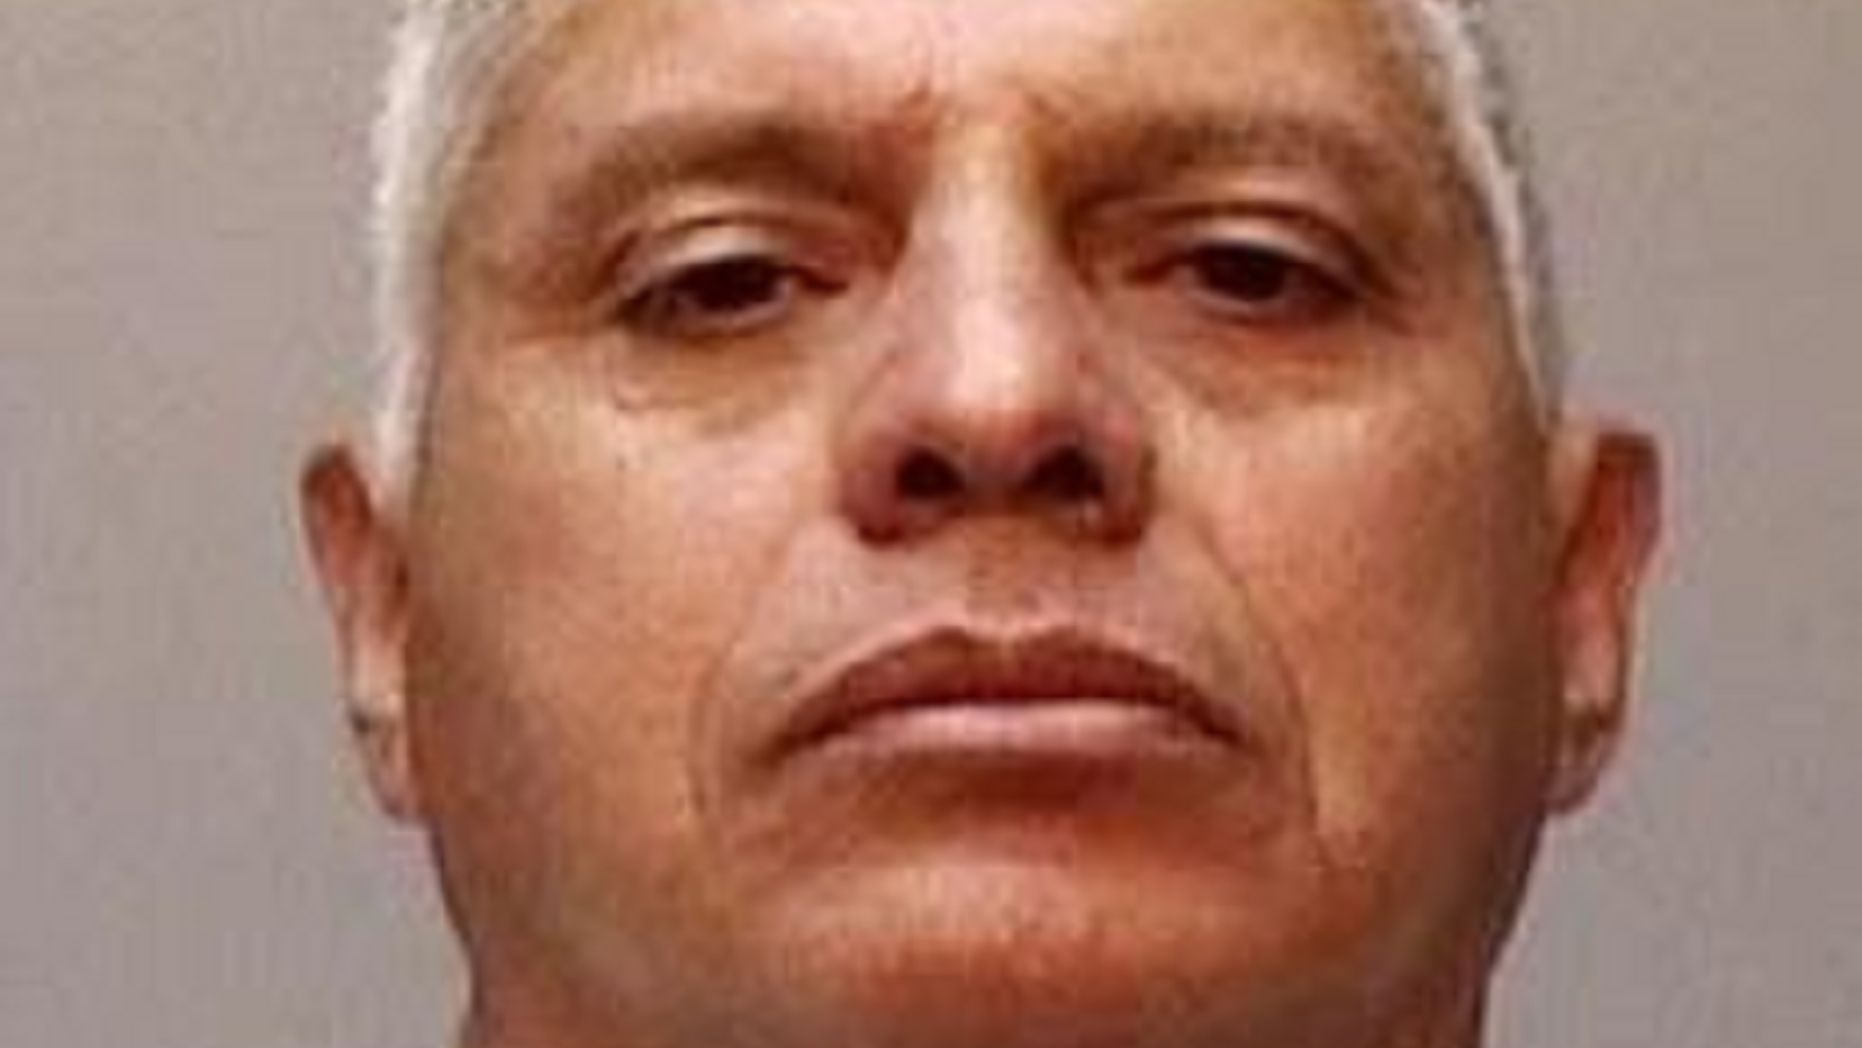 Enrique Fernandez was arrested for shooting a gun on his Texas property.